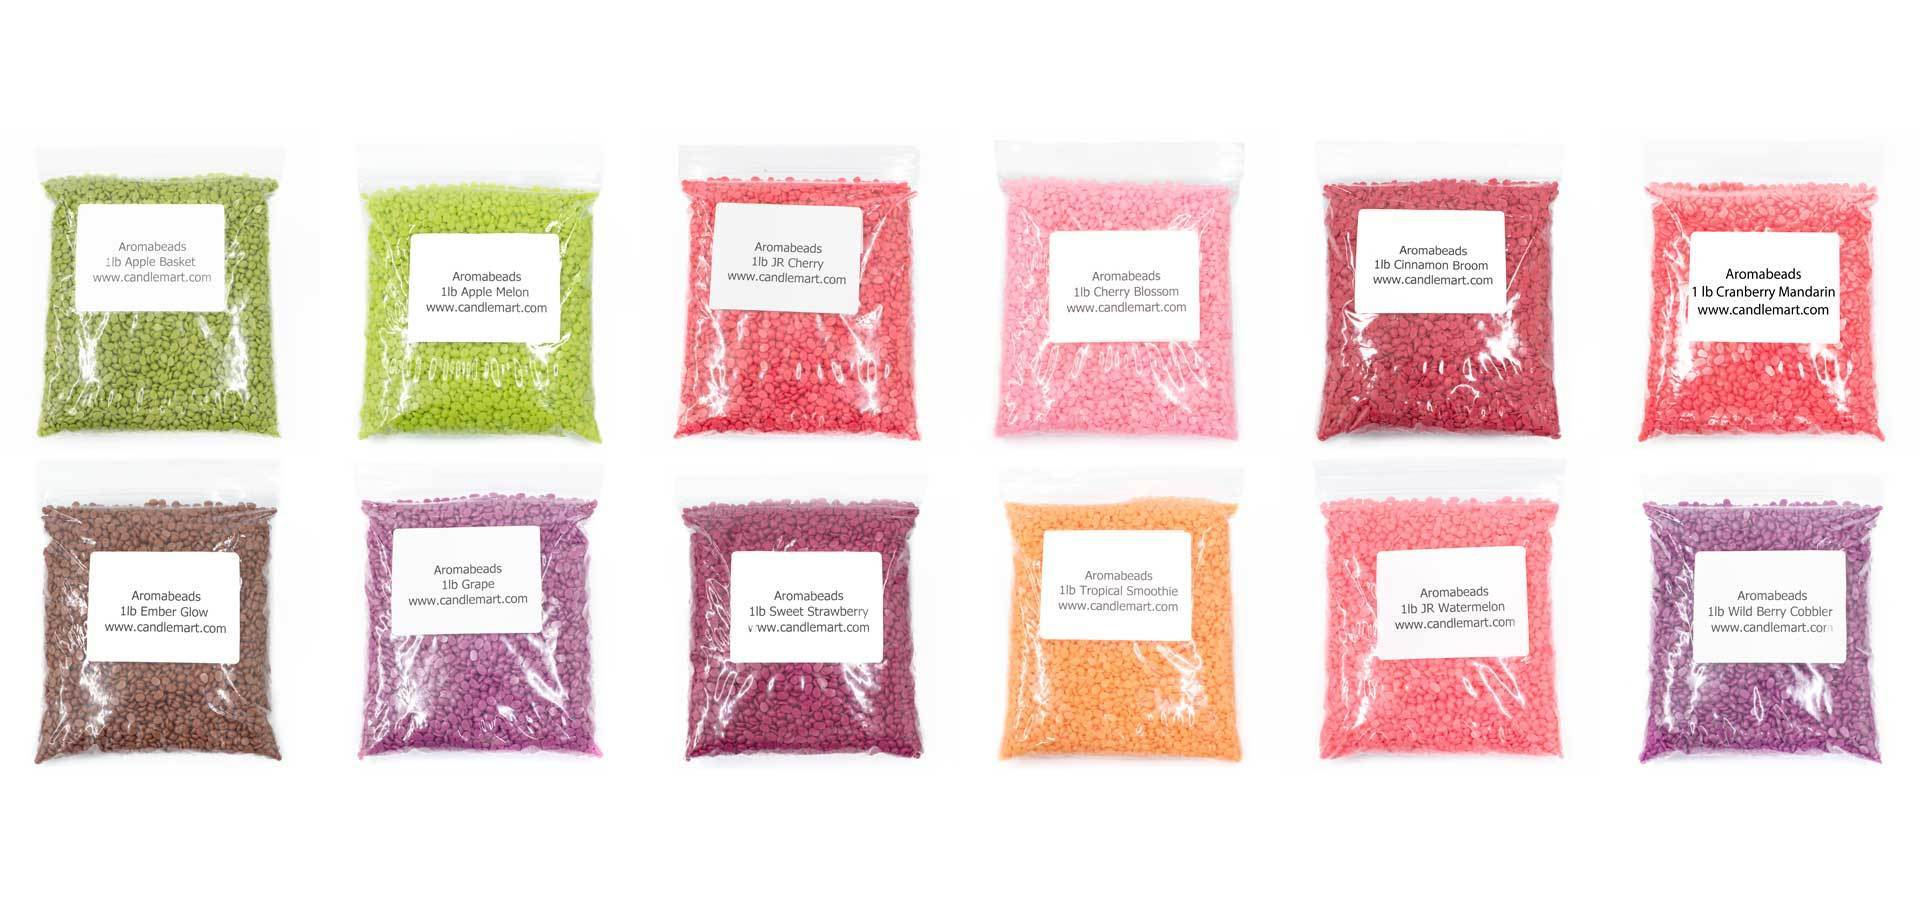 Aromabeads Singles Coral Honeysuckle Bulk Wax Beads Melts Candlemart.com $ 6.99